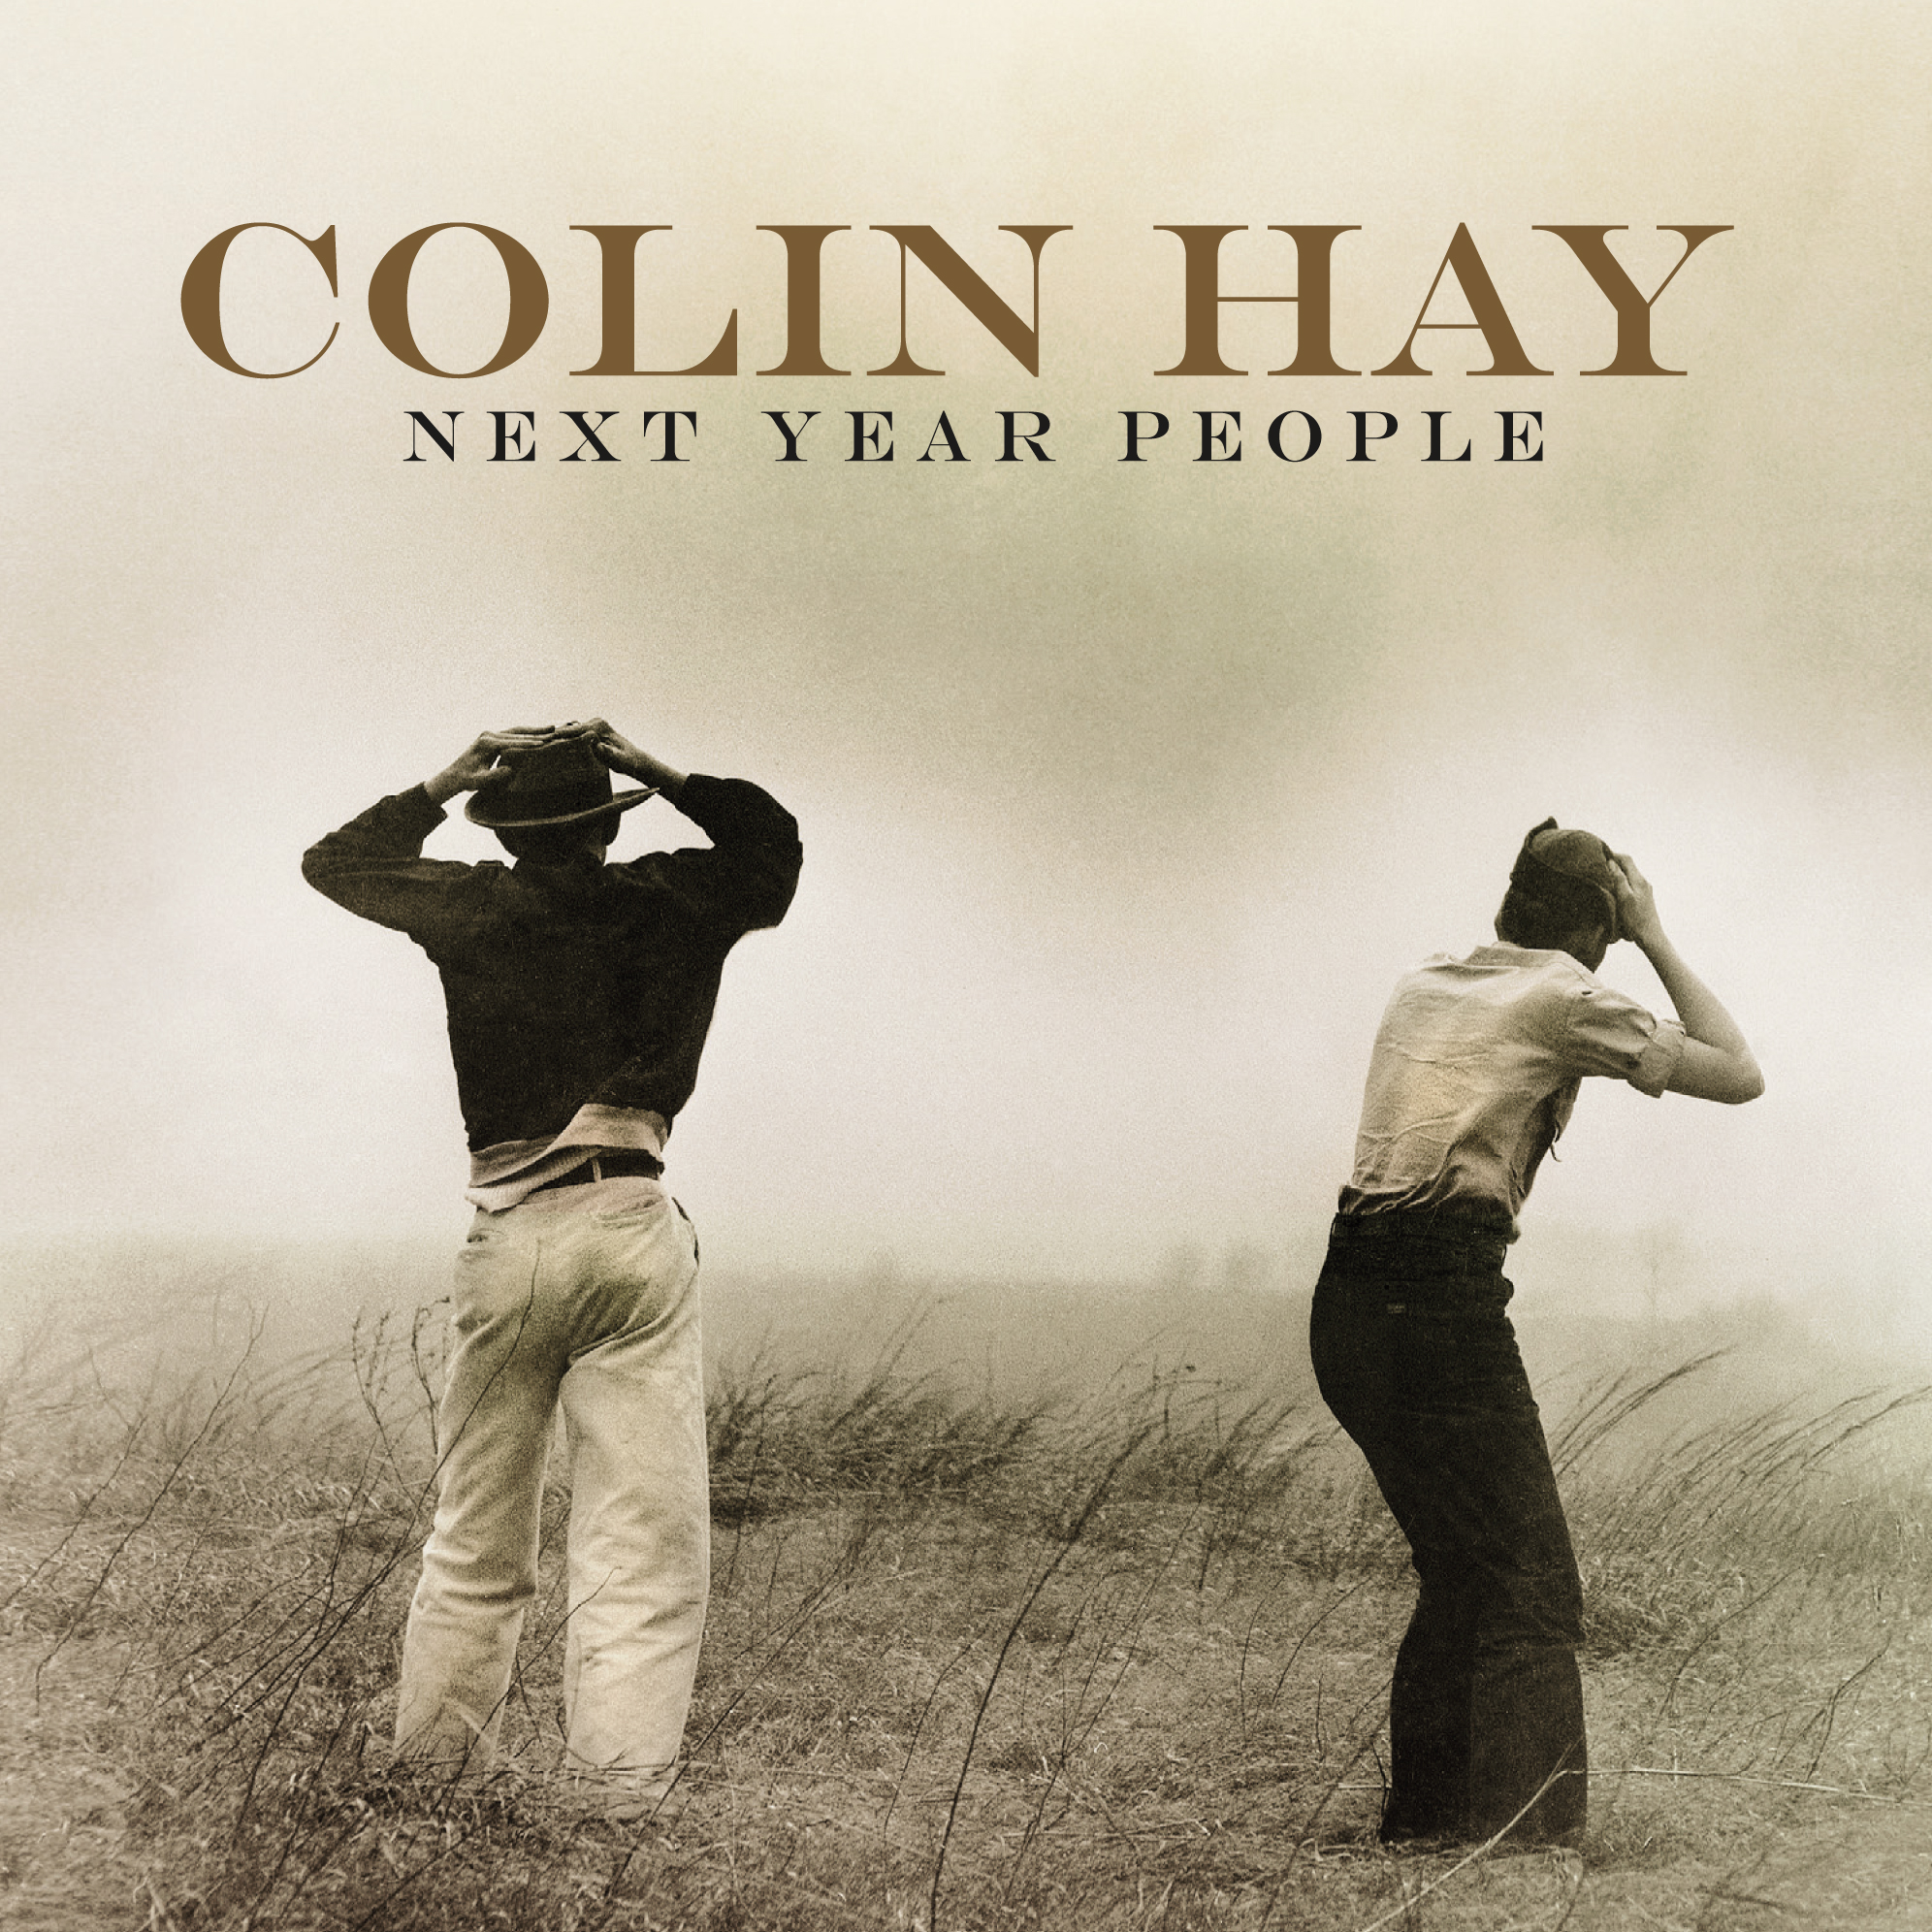 Colin Hay - Next Year People, Album Art